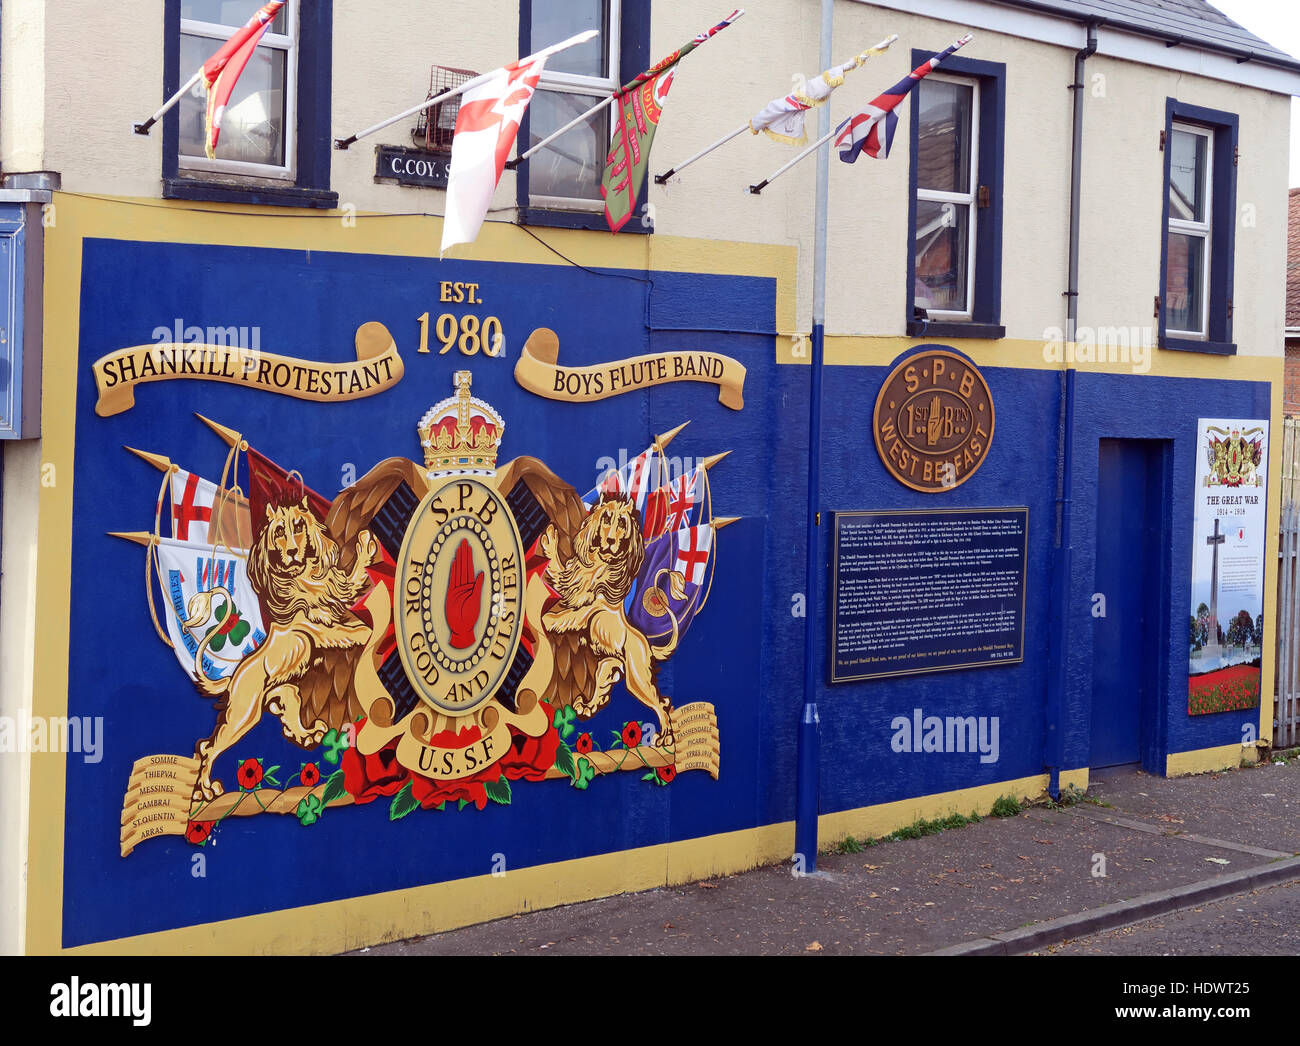 Red hand,Ulster,memorial,UFF,Unionist,mural,off,Shankill,rd,Road,West Belfast,Northern Ireland,UK,Ireland,fighter,fighting,Protestant,Boys,Flute,Band,Flute,1980,crest,flag,flags,SPB,Longkesh,USSF,Protestant Boys Flute Band,Protestant Boys,GoTonySmith,@HotpixUK,Tony,Smith,UK,GB,Great,Britain,United,Kingdom,Irish,British,Ireland,problem,with,problem with,issue with,NI,Northern,Northern Ireland,Belfast,City,Centre,Art,Artists,the,troubles,The Troubles,Good Friday Agreement,Peace,honour,painting,wall,walls,tribute,Unionist,unionism,Protestant,community,Fight,Justice,West,Beal,feirste,martyrs,social,tour,tourism,tourists,urban,six,counties,6,backdrop,county,Antrim,UVF,DUP,British,GB,Empire,Buy Pictures of,Buy Images Of,Images of,Stock Images,Tony Smith,United Kingdom,Great Britain,British Isles,Belfast protestant community,Peoples army,Shankill Protestant Boys